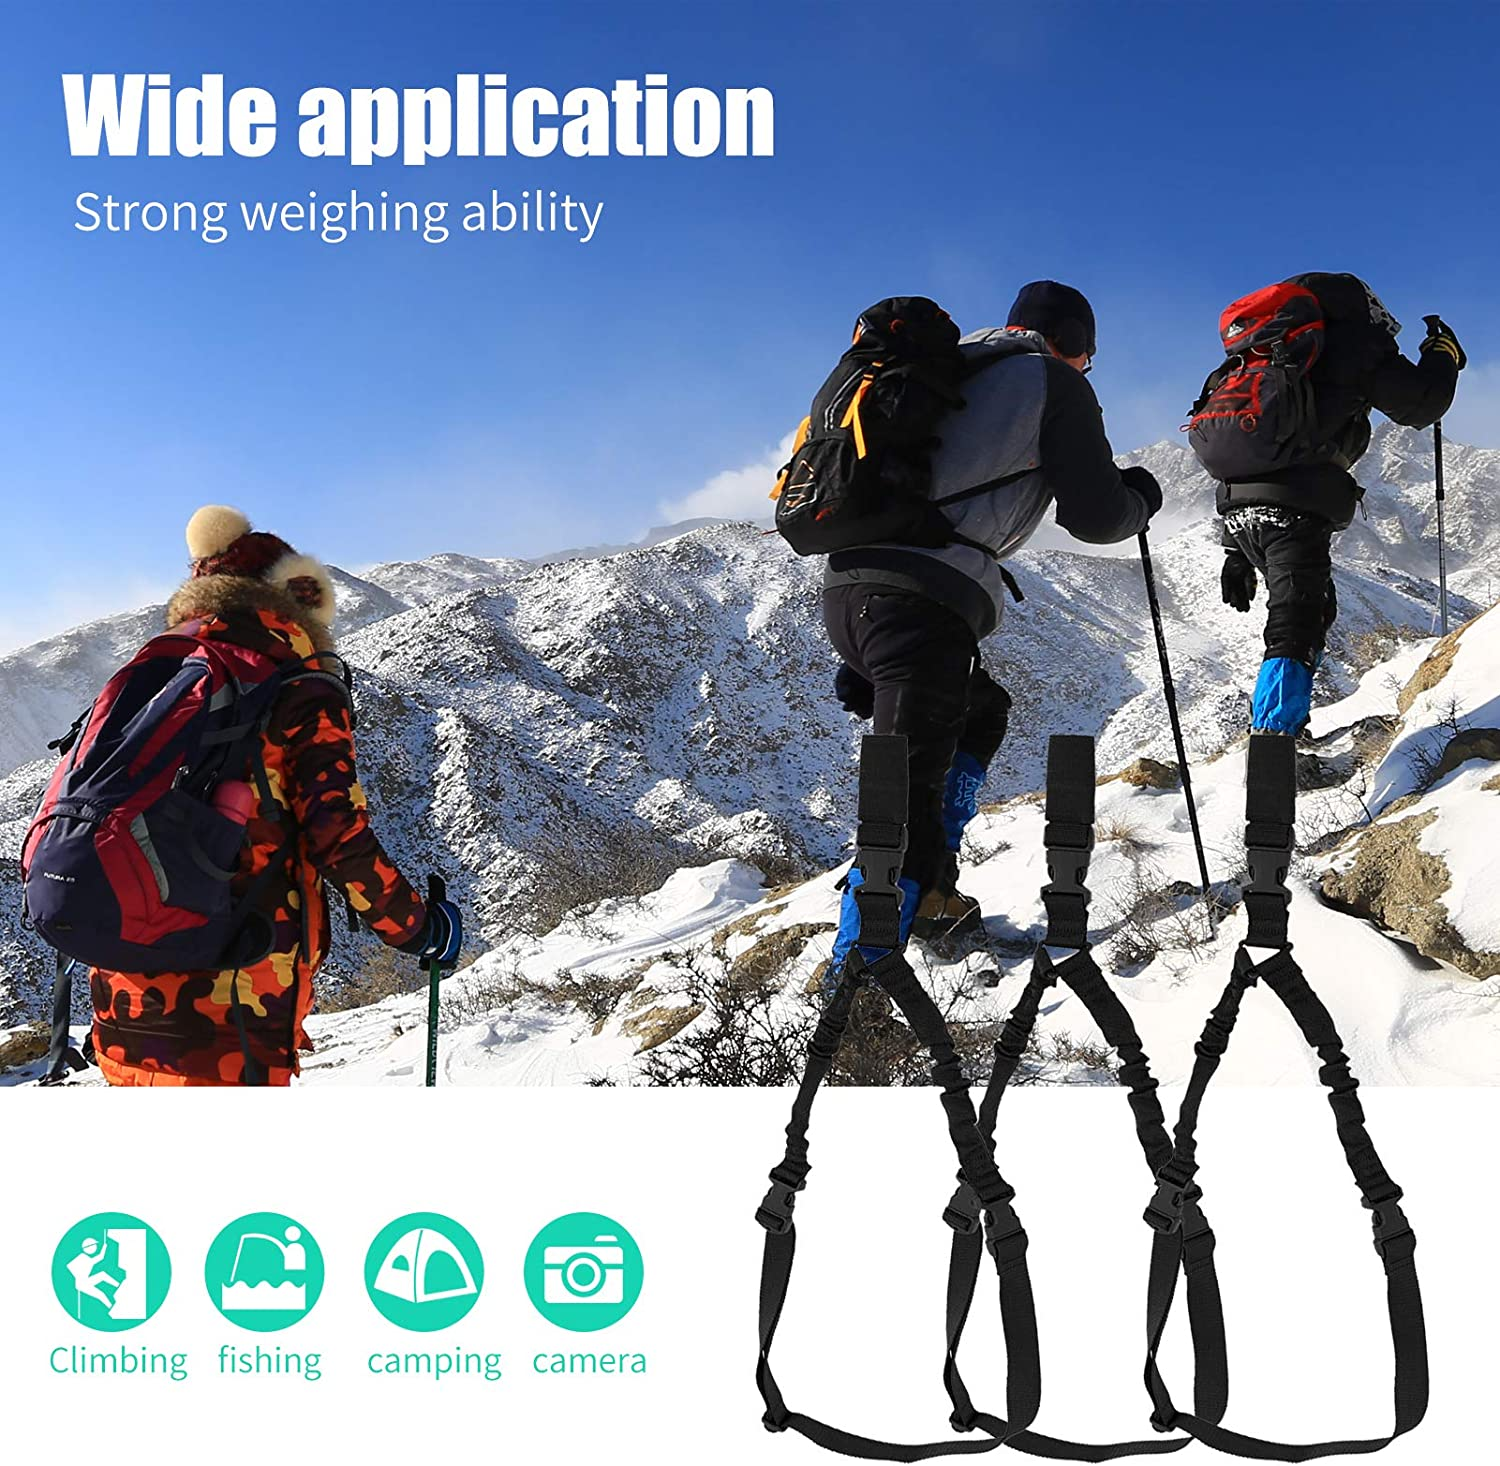 1Pc Climbing Rope Multi-Function Rope Adjustable Shoulder Straps Mountaineering Lanyard with Metal Hook for Outdoor Sports Camping Fishing Safety Accessory 1 Pc